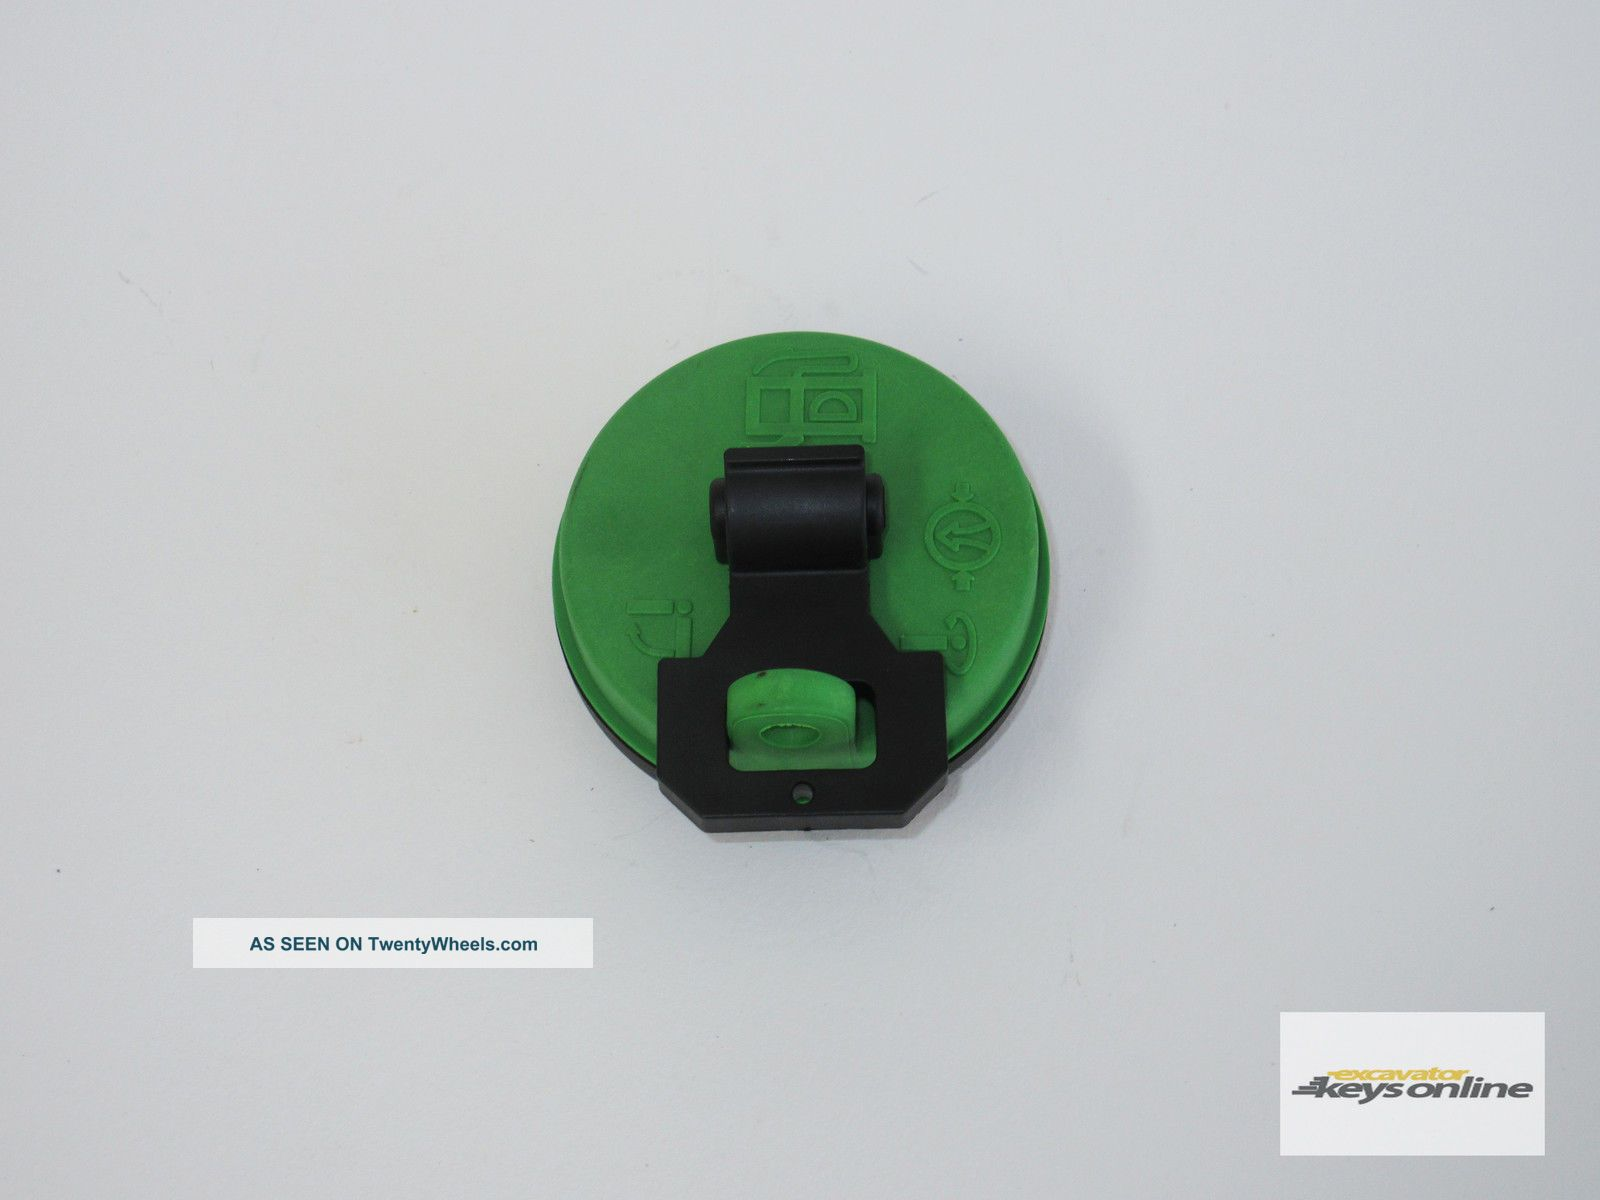 Terex Fuel Cap Green Part Number 2045 - 407 Uncategorized photo